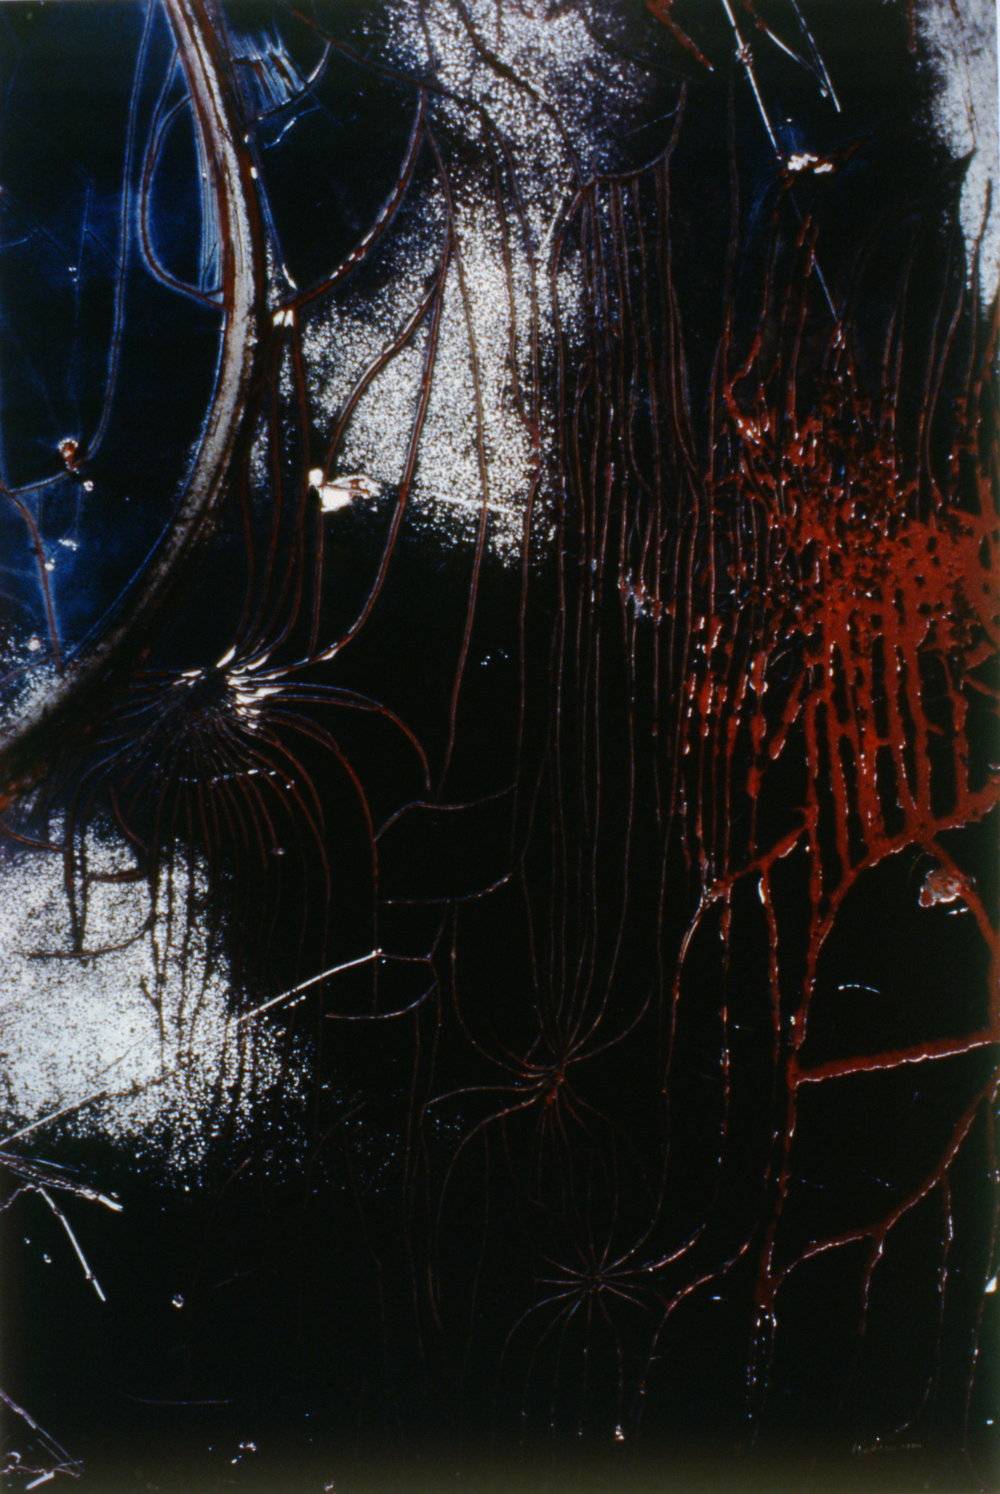 "Etchings of Time , nd. Gerhard Kahrmann, photograph, 22"" x 28"", 1994.16.01"